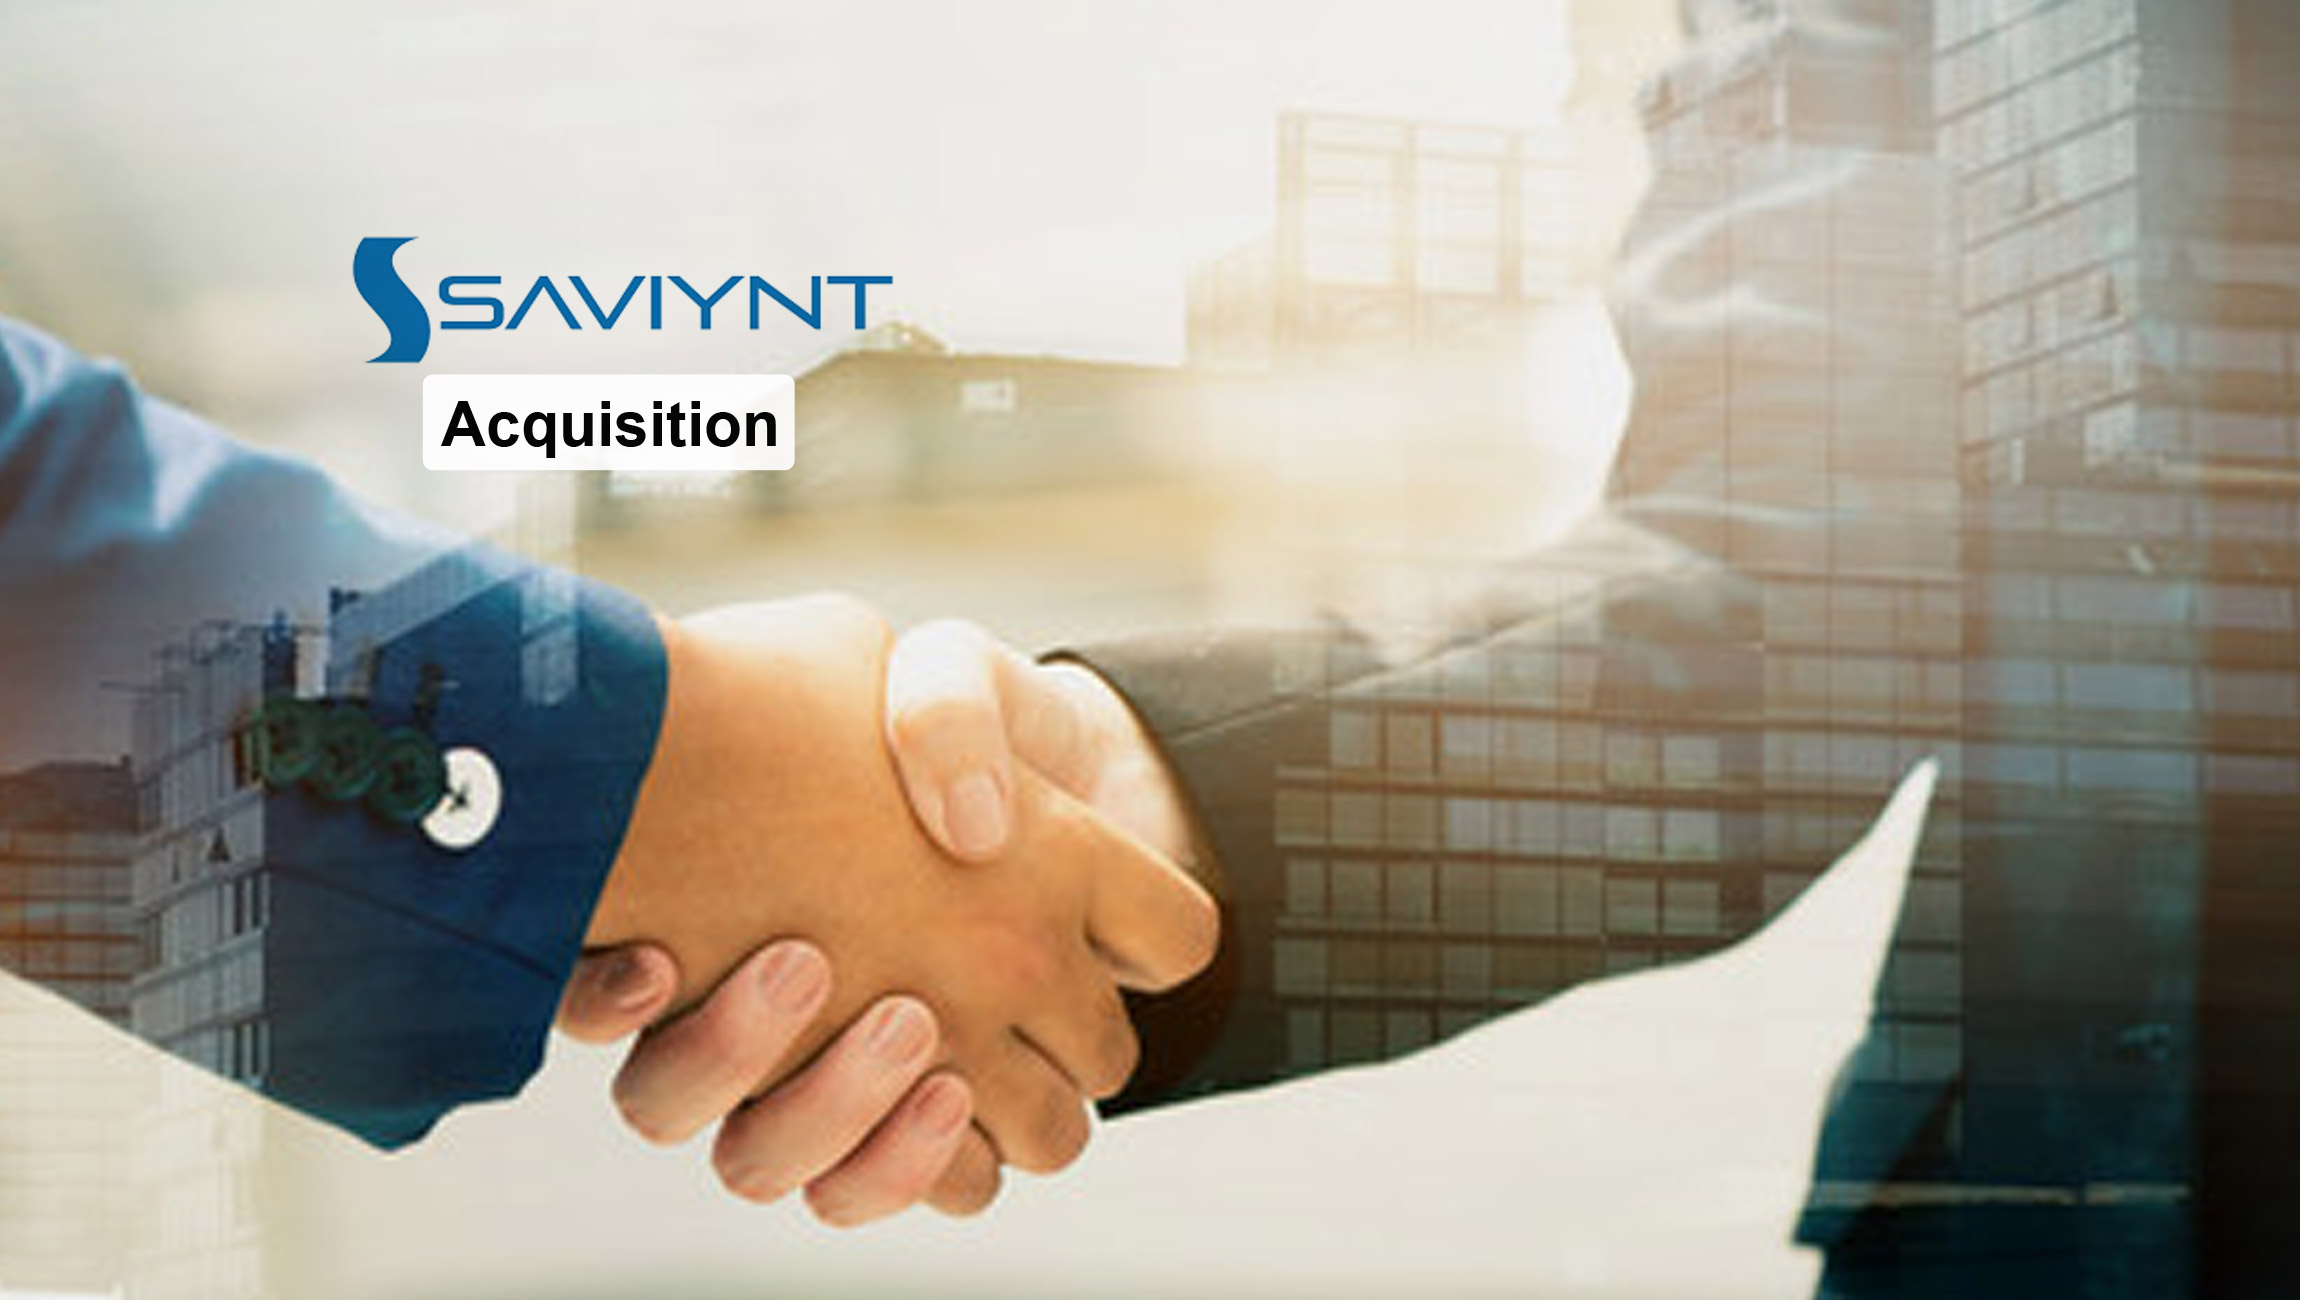 Saviynt Achieves Record Growth Driven By New Customer Acquisition, Product Innovation, And Expanding Partner Ecosystem